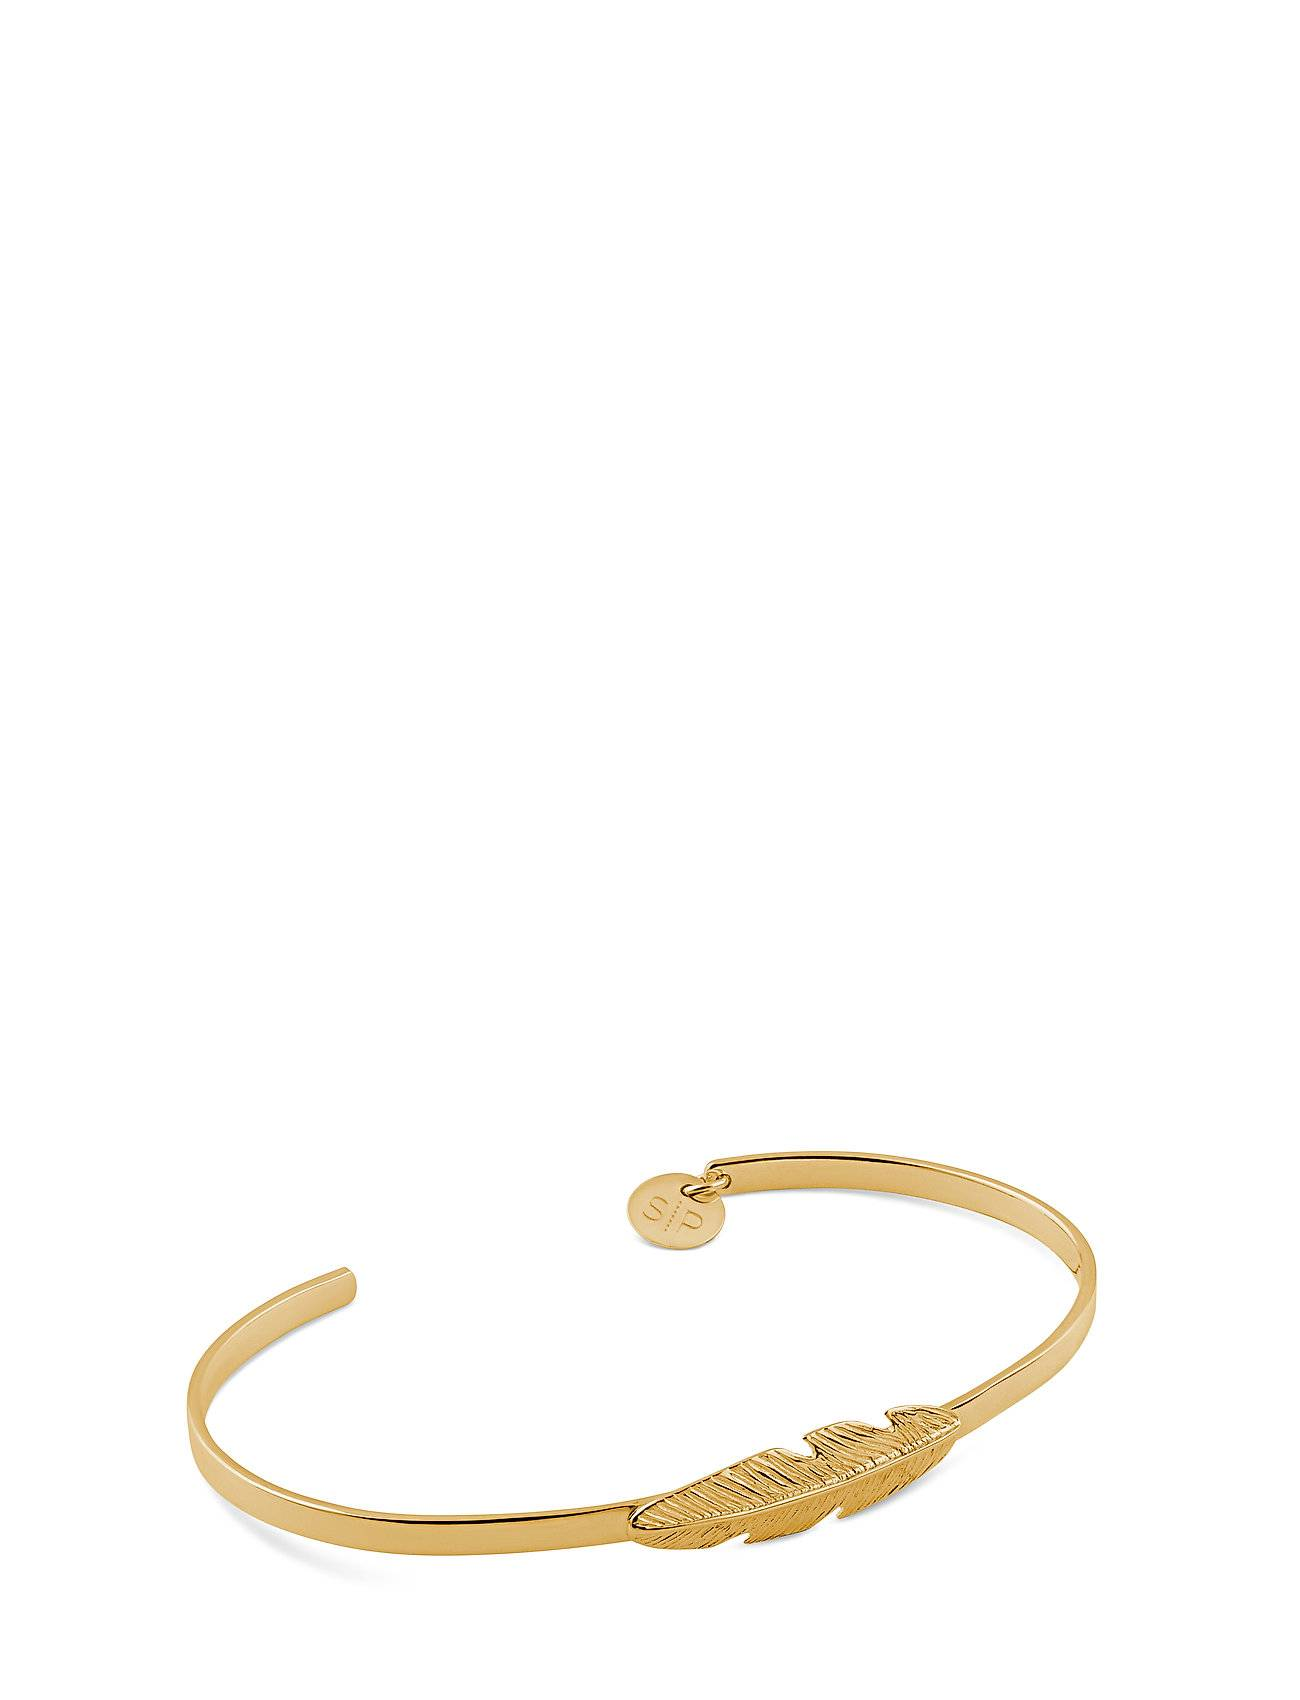 Syster P Feather Bangle Gold Accessories Jewellery Bracelets Bangles Kulta Syster P